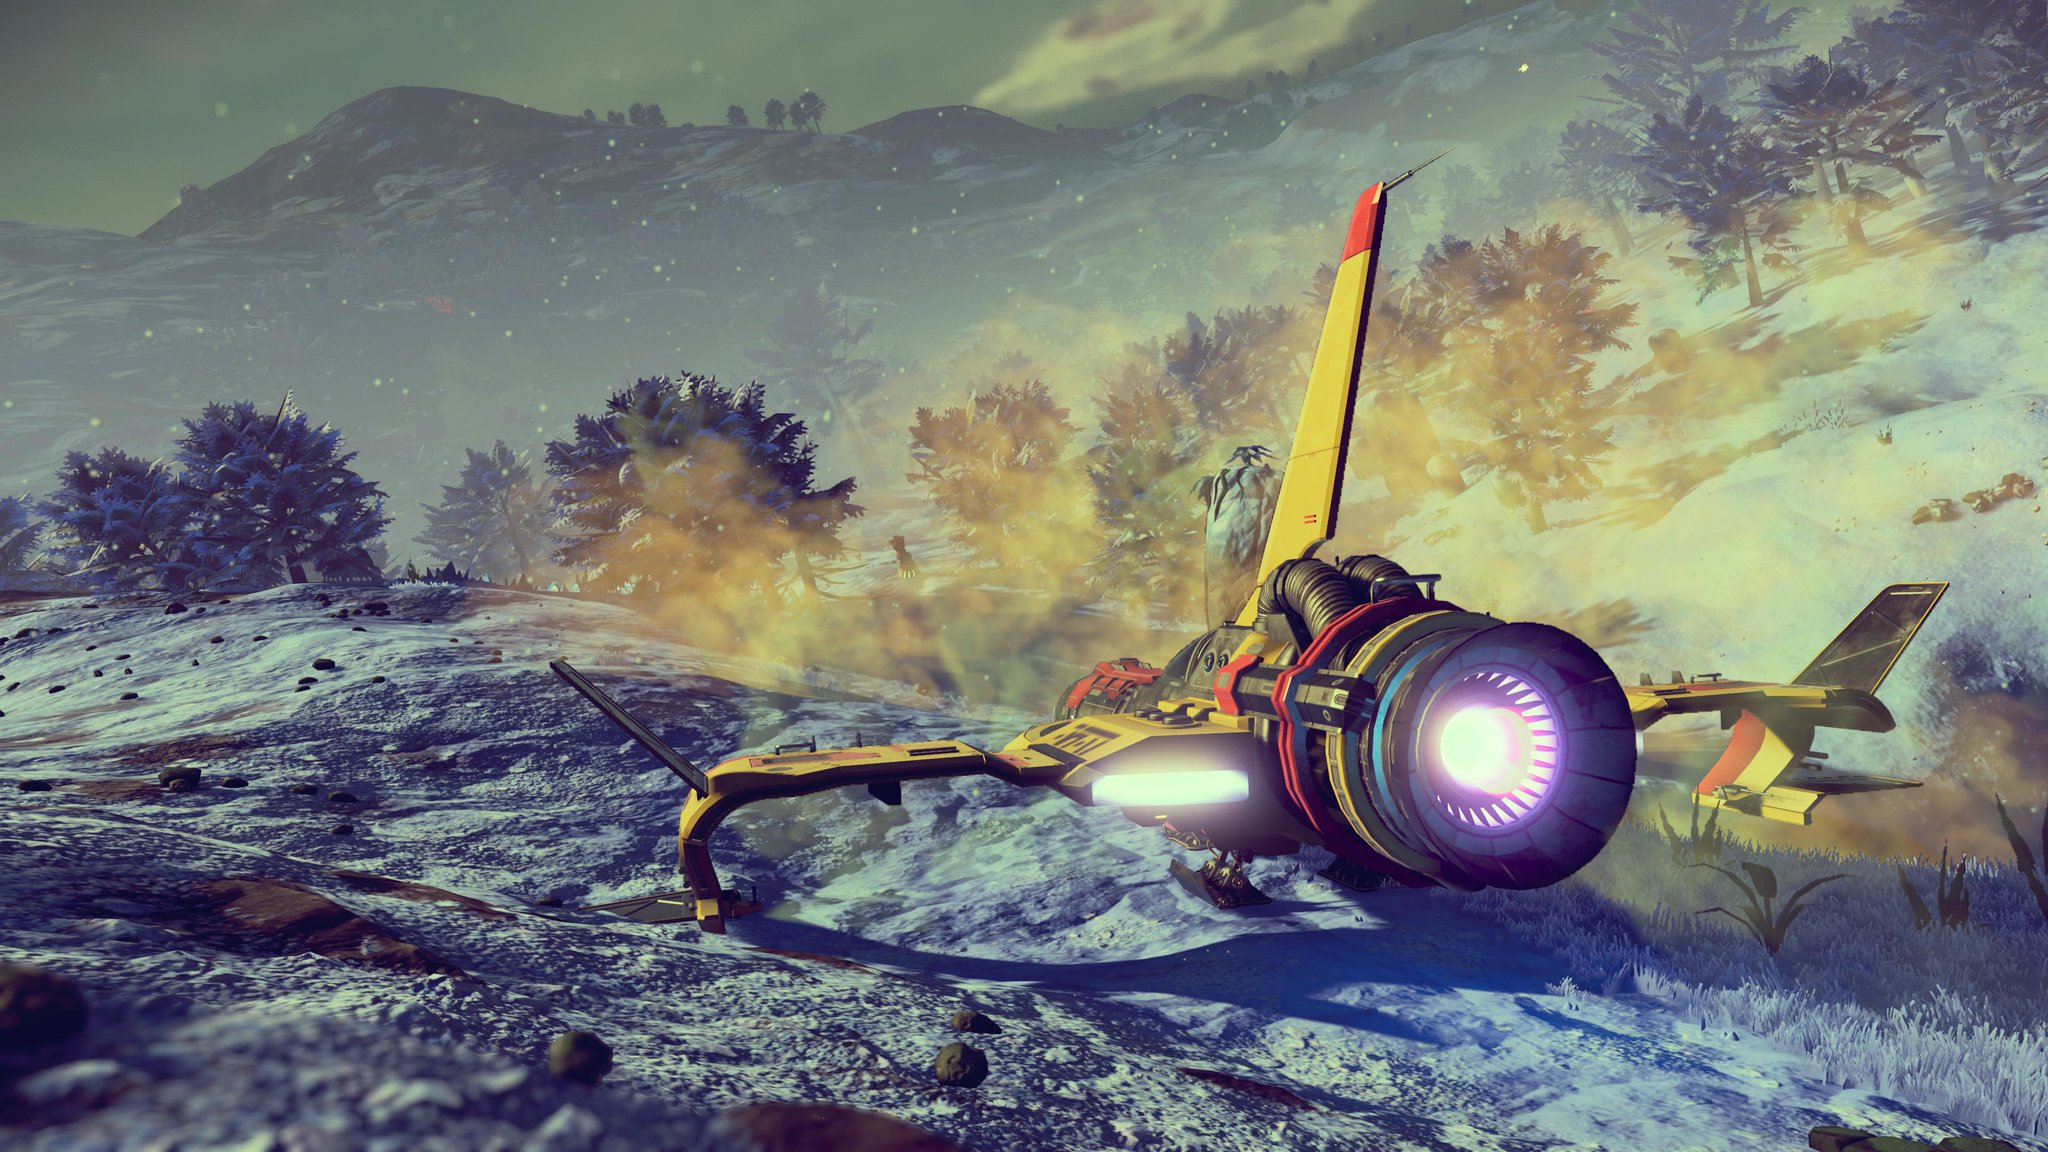 A cold planet, a yellow spaceship parked in the foreground.